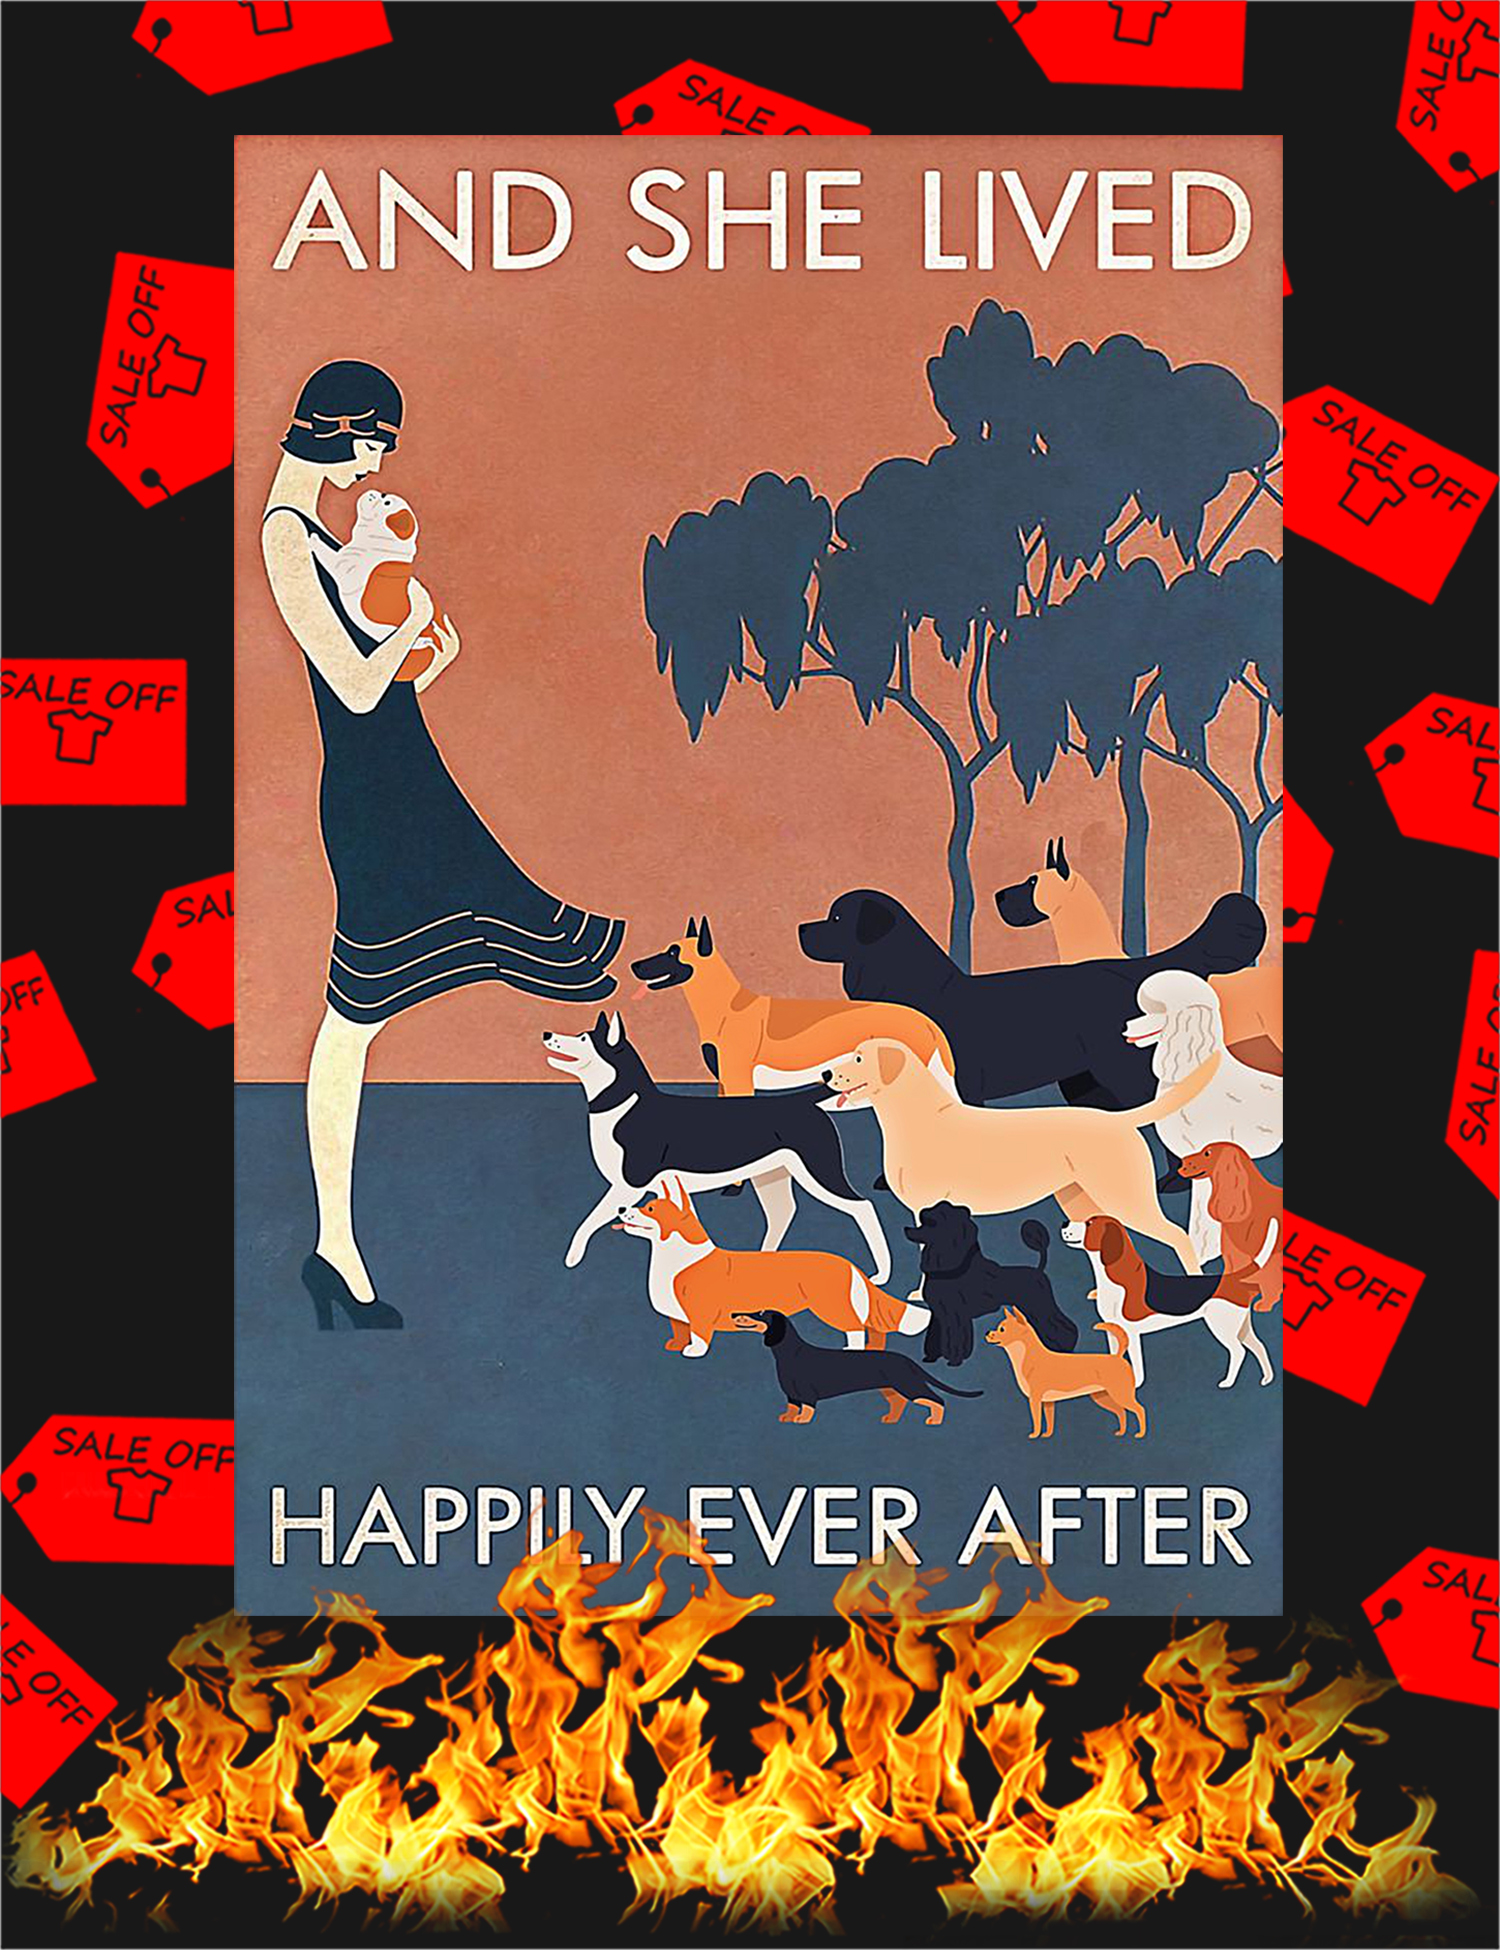 Dog And she lived happily ever after Poster - A1